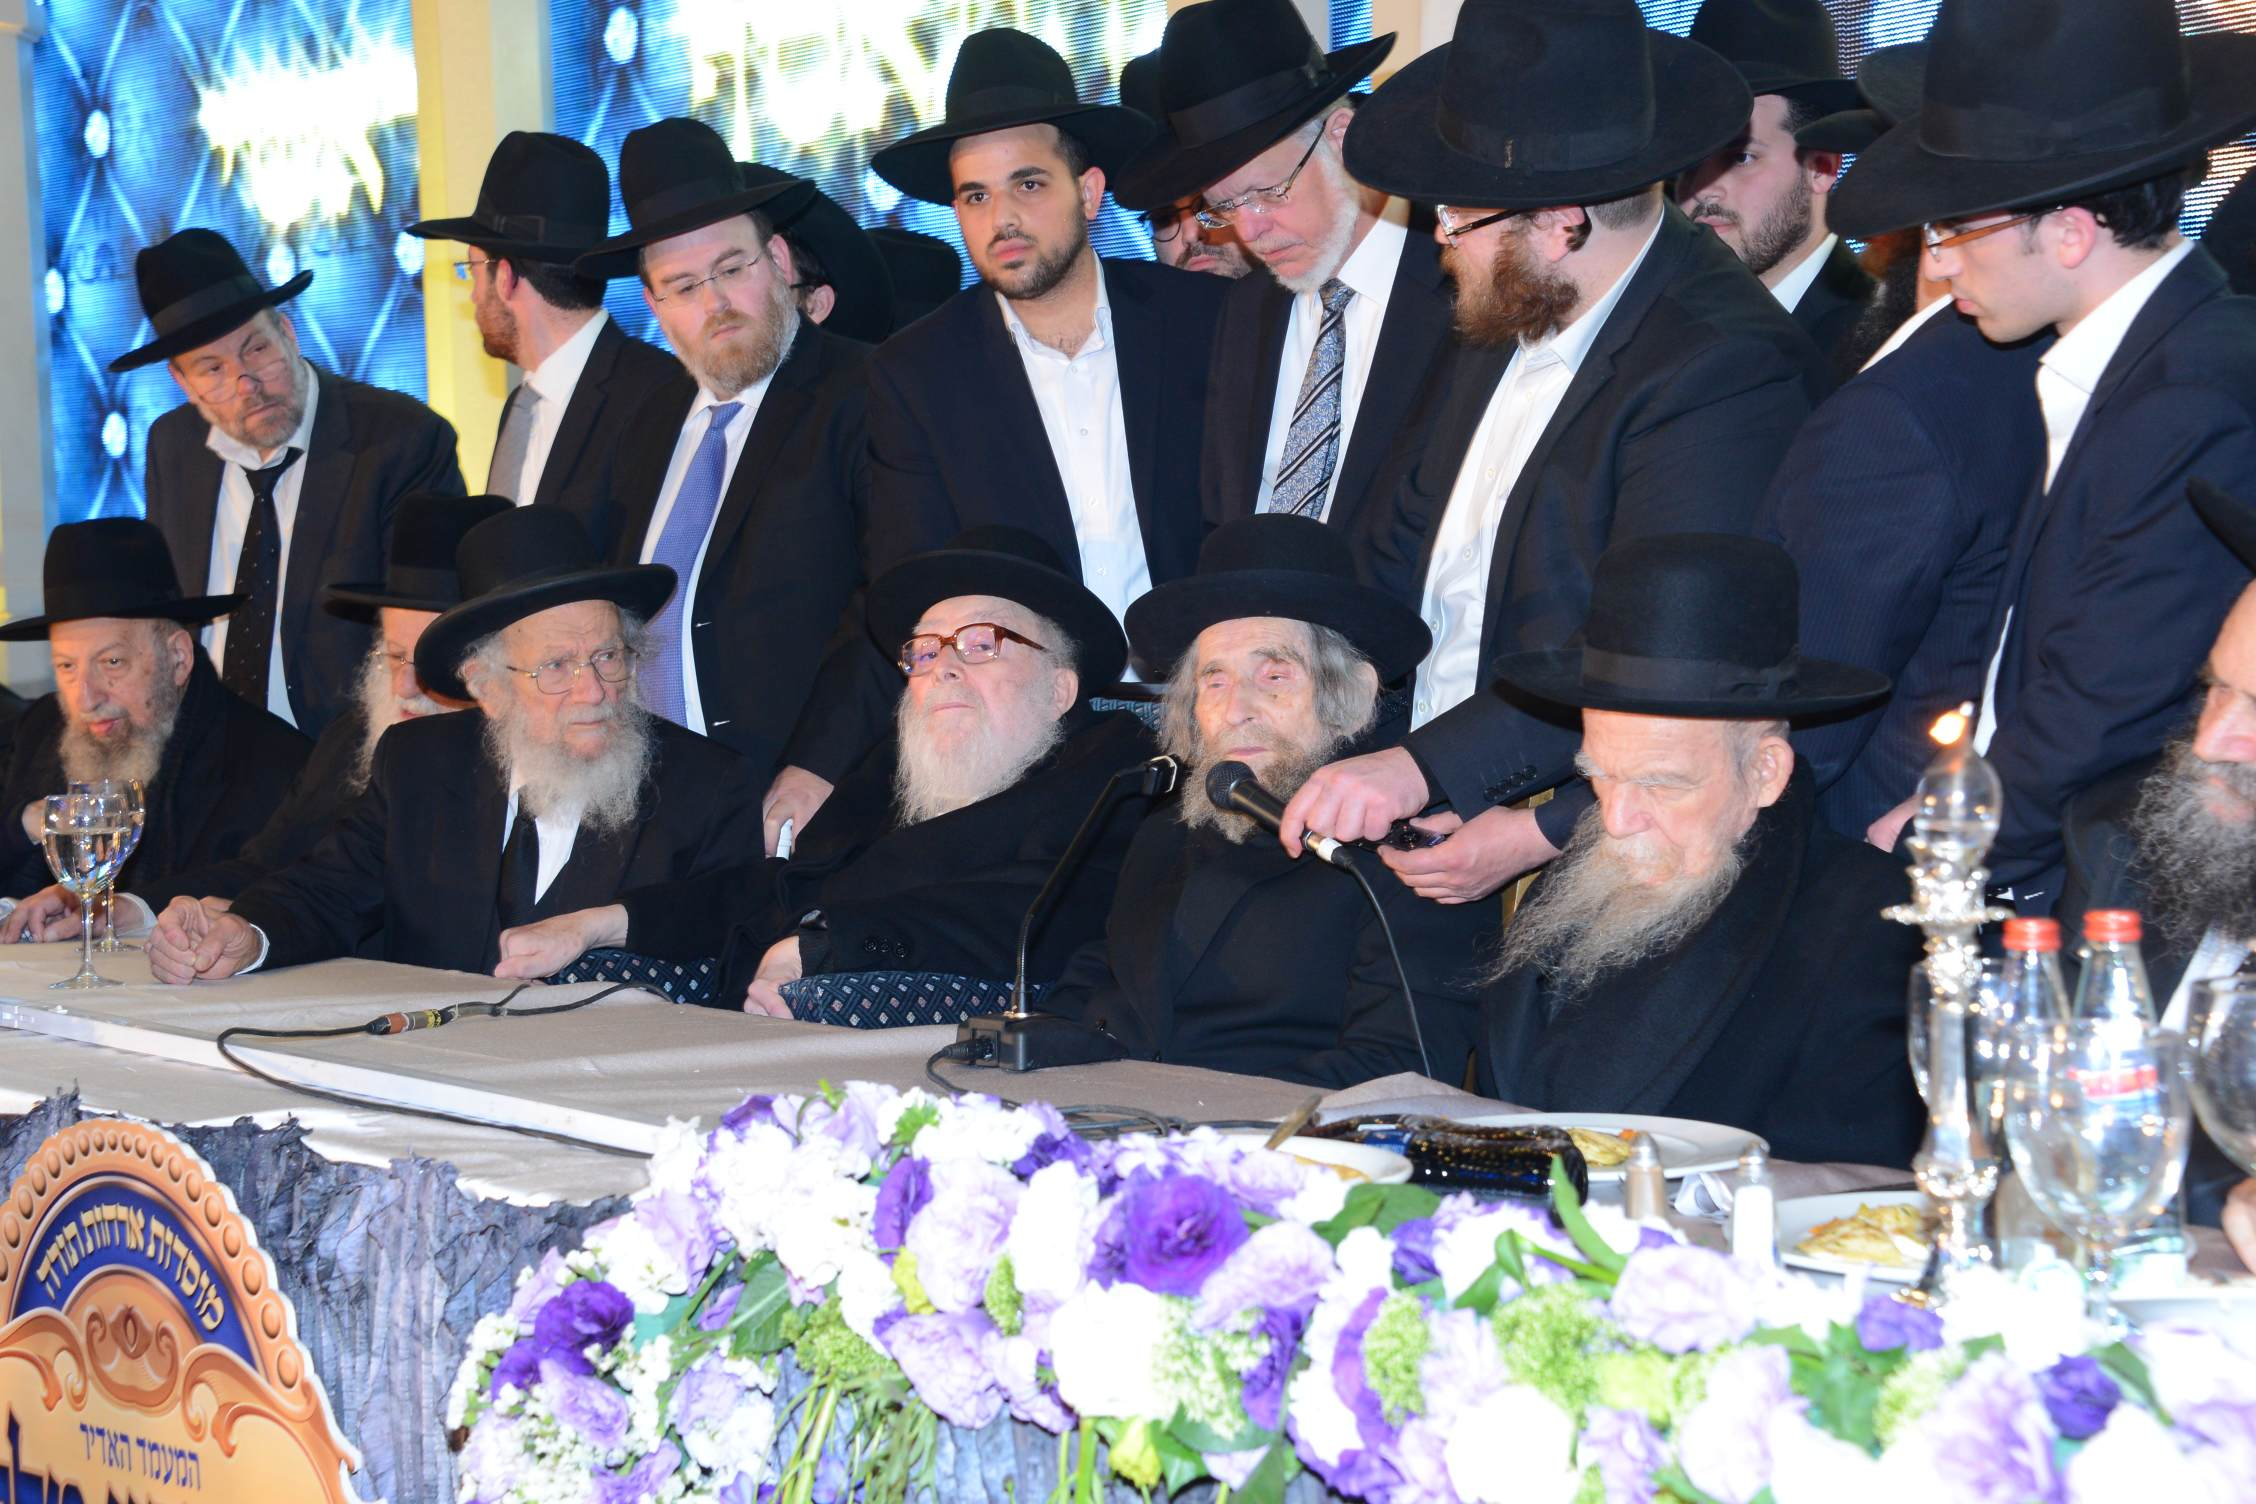 Unique Event Sponsored By Yeshivat Orchot Torah For Its Students And Alumni